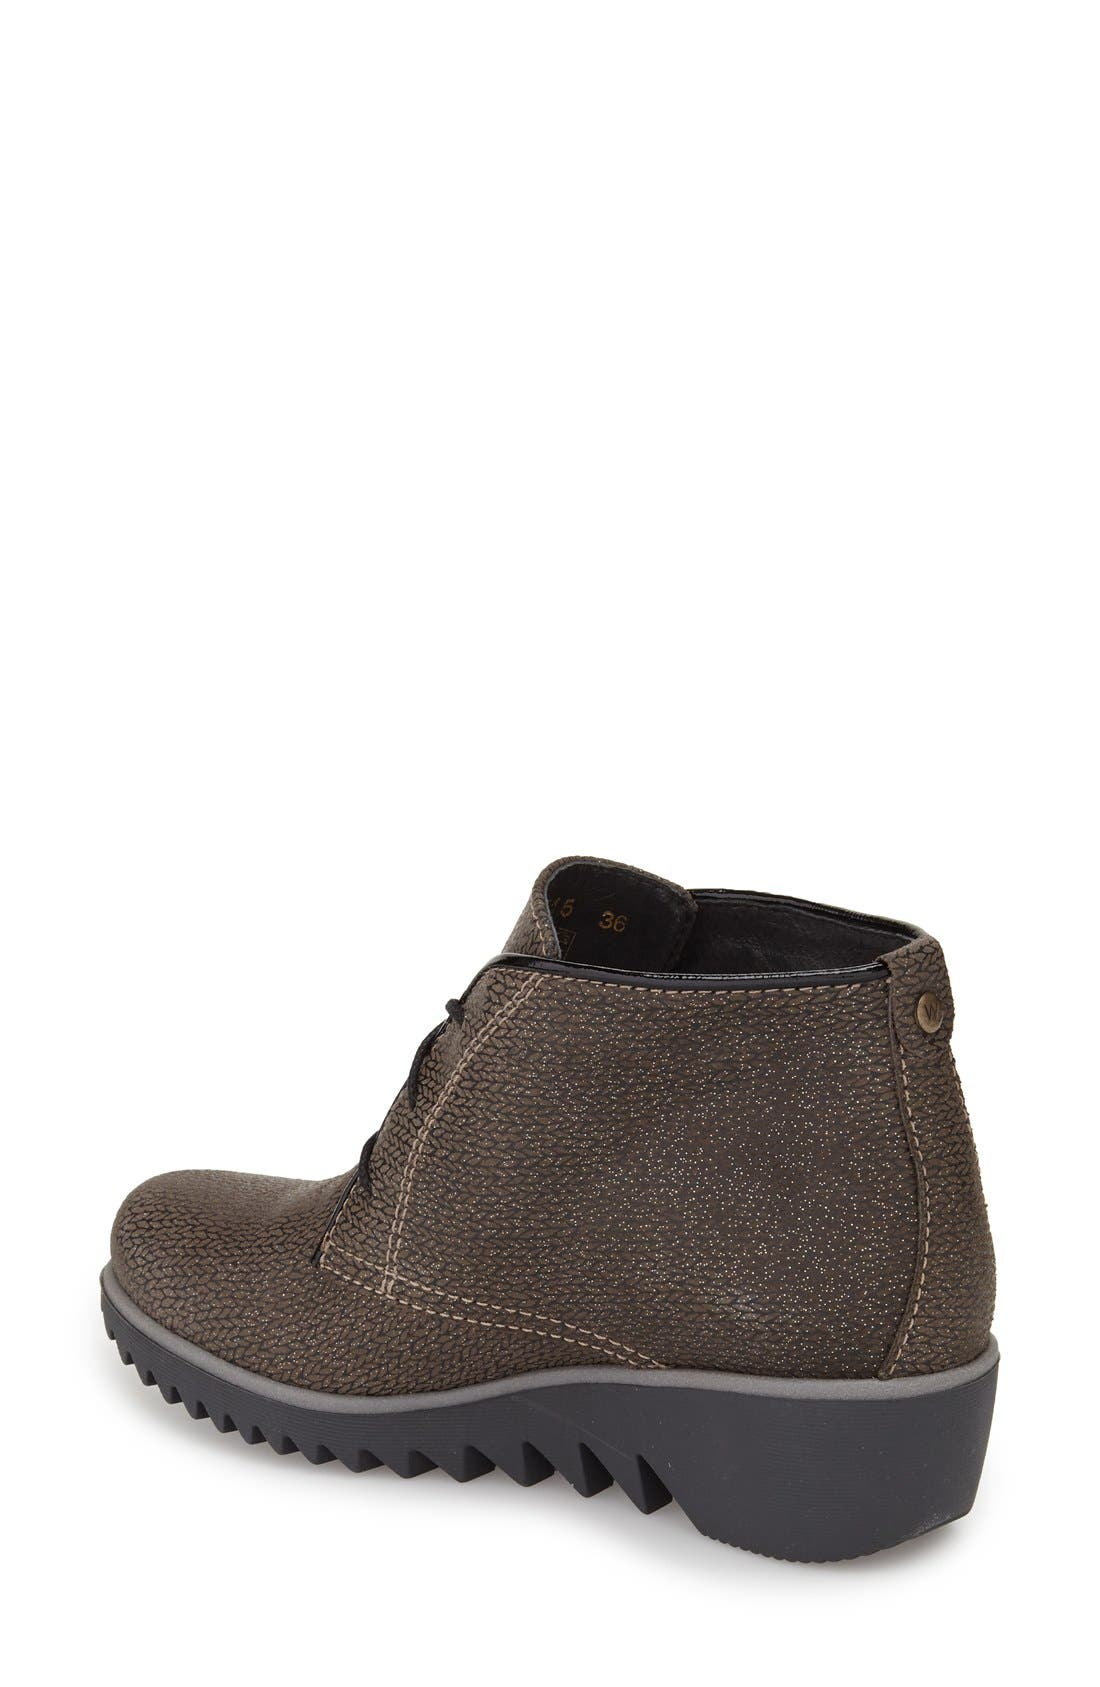 'Dusty' Hidden Wedge Bootie,                             Alternate thumbnail 2, color,                             TAUPE MALIBU SUEDE